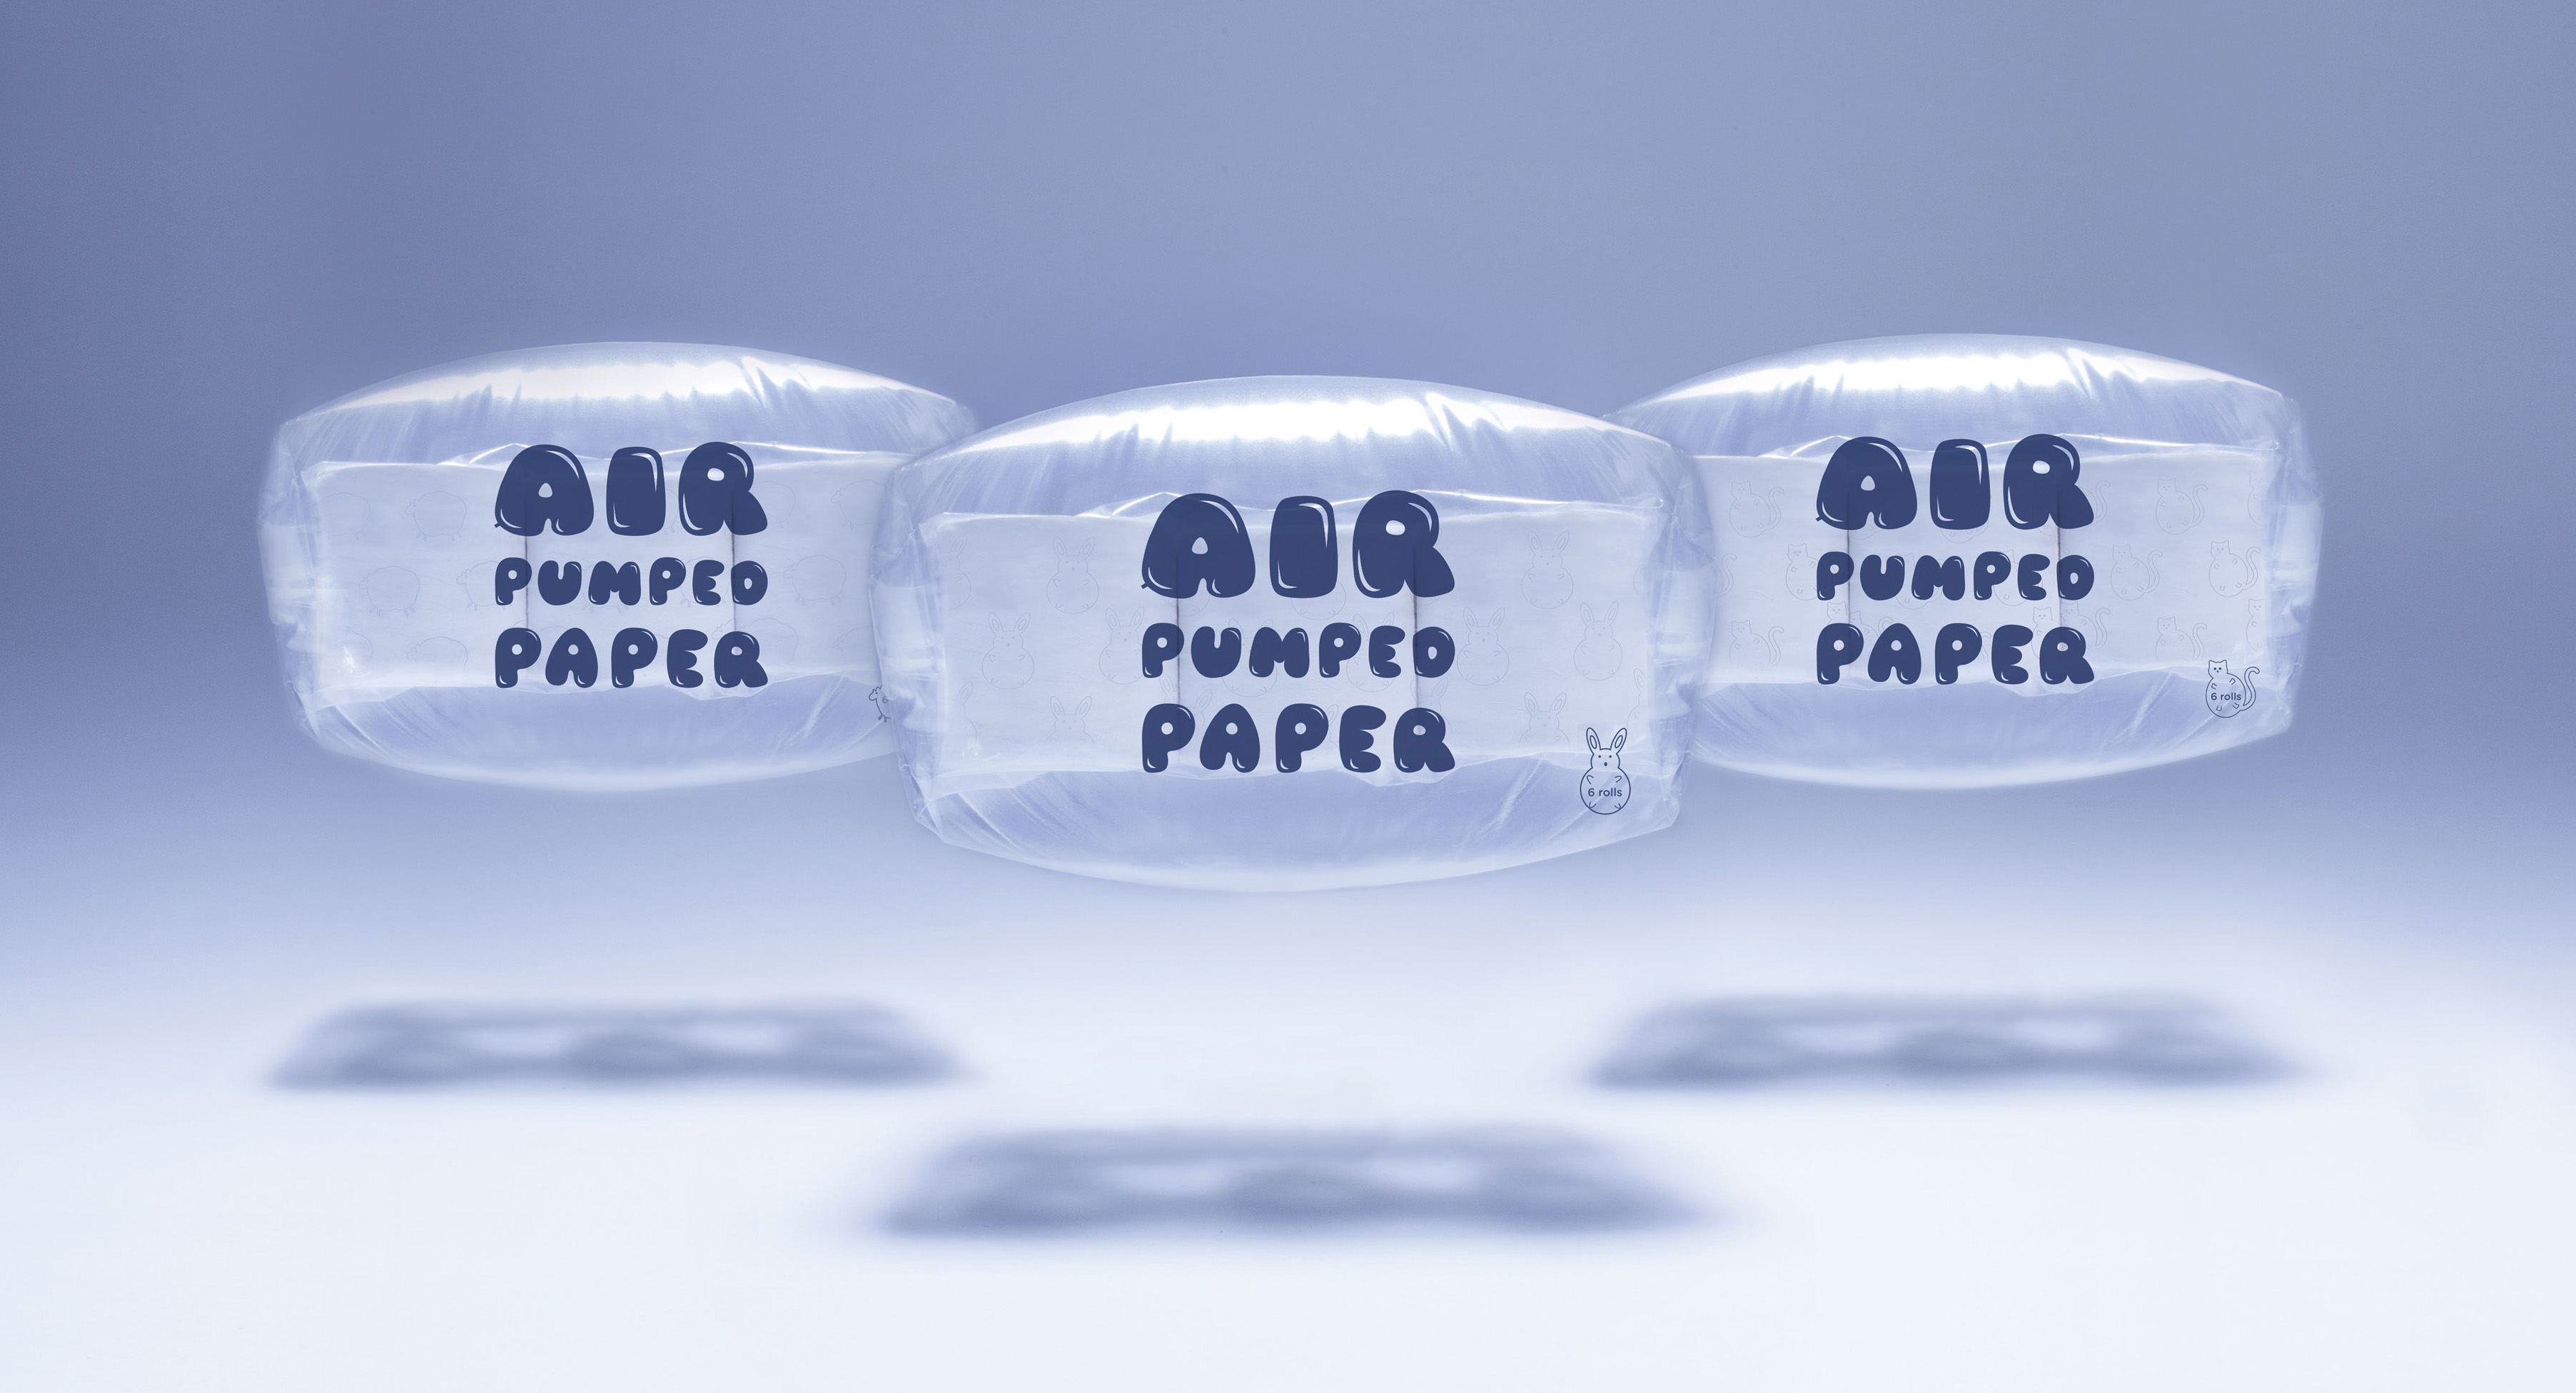 Air_pumped_toilet_paper_Brand_Creation_2016_3